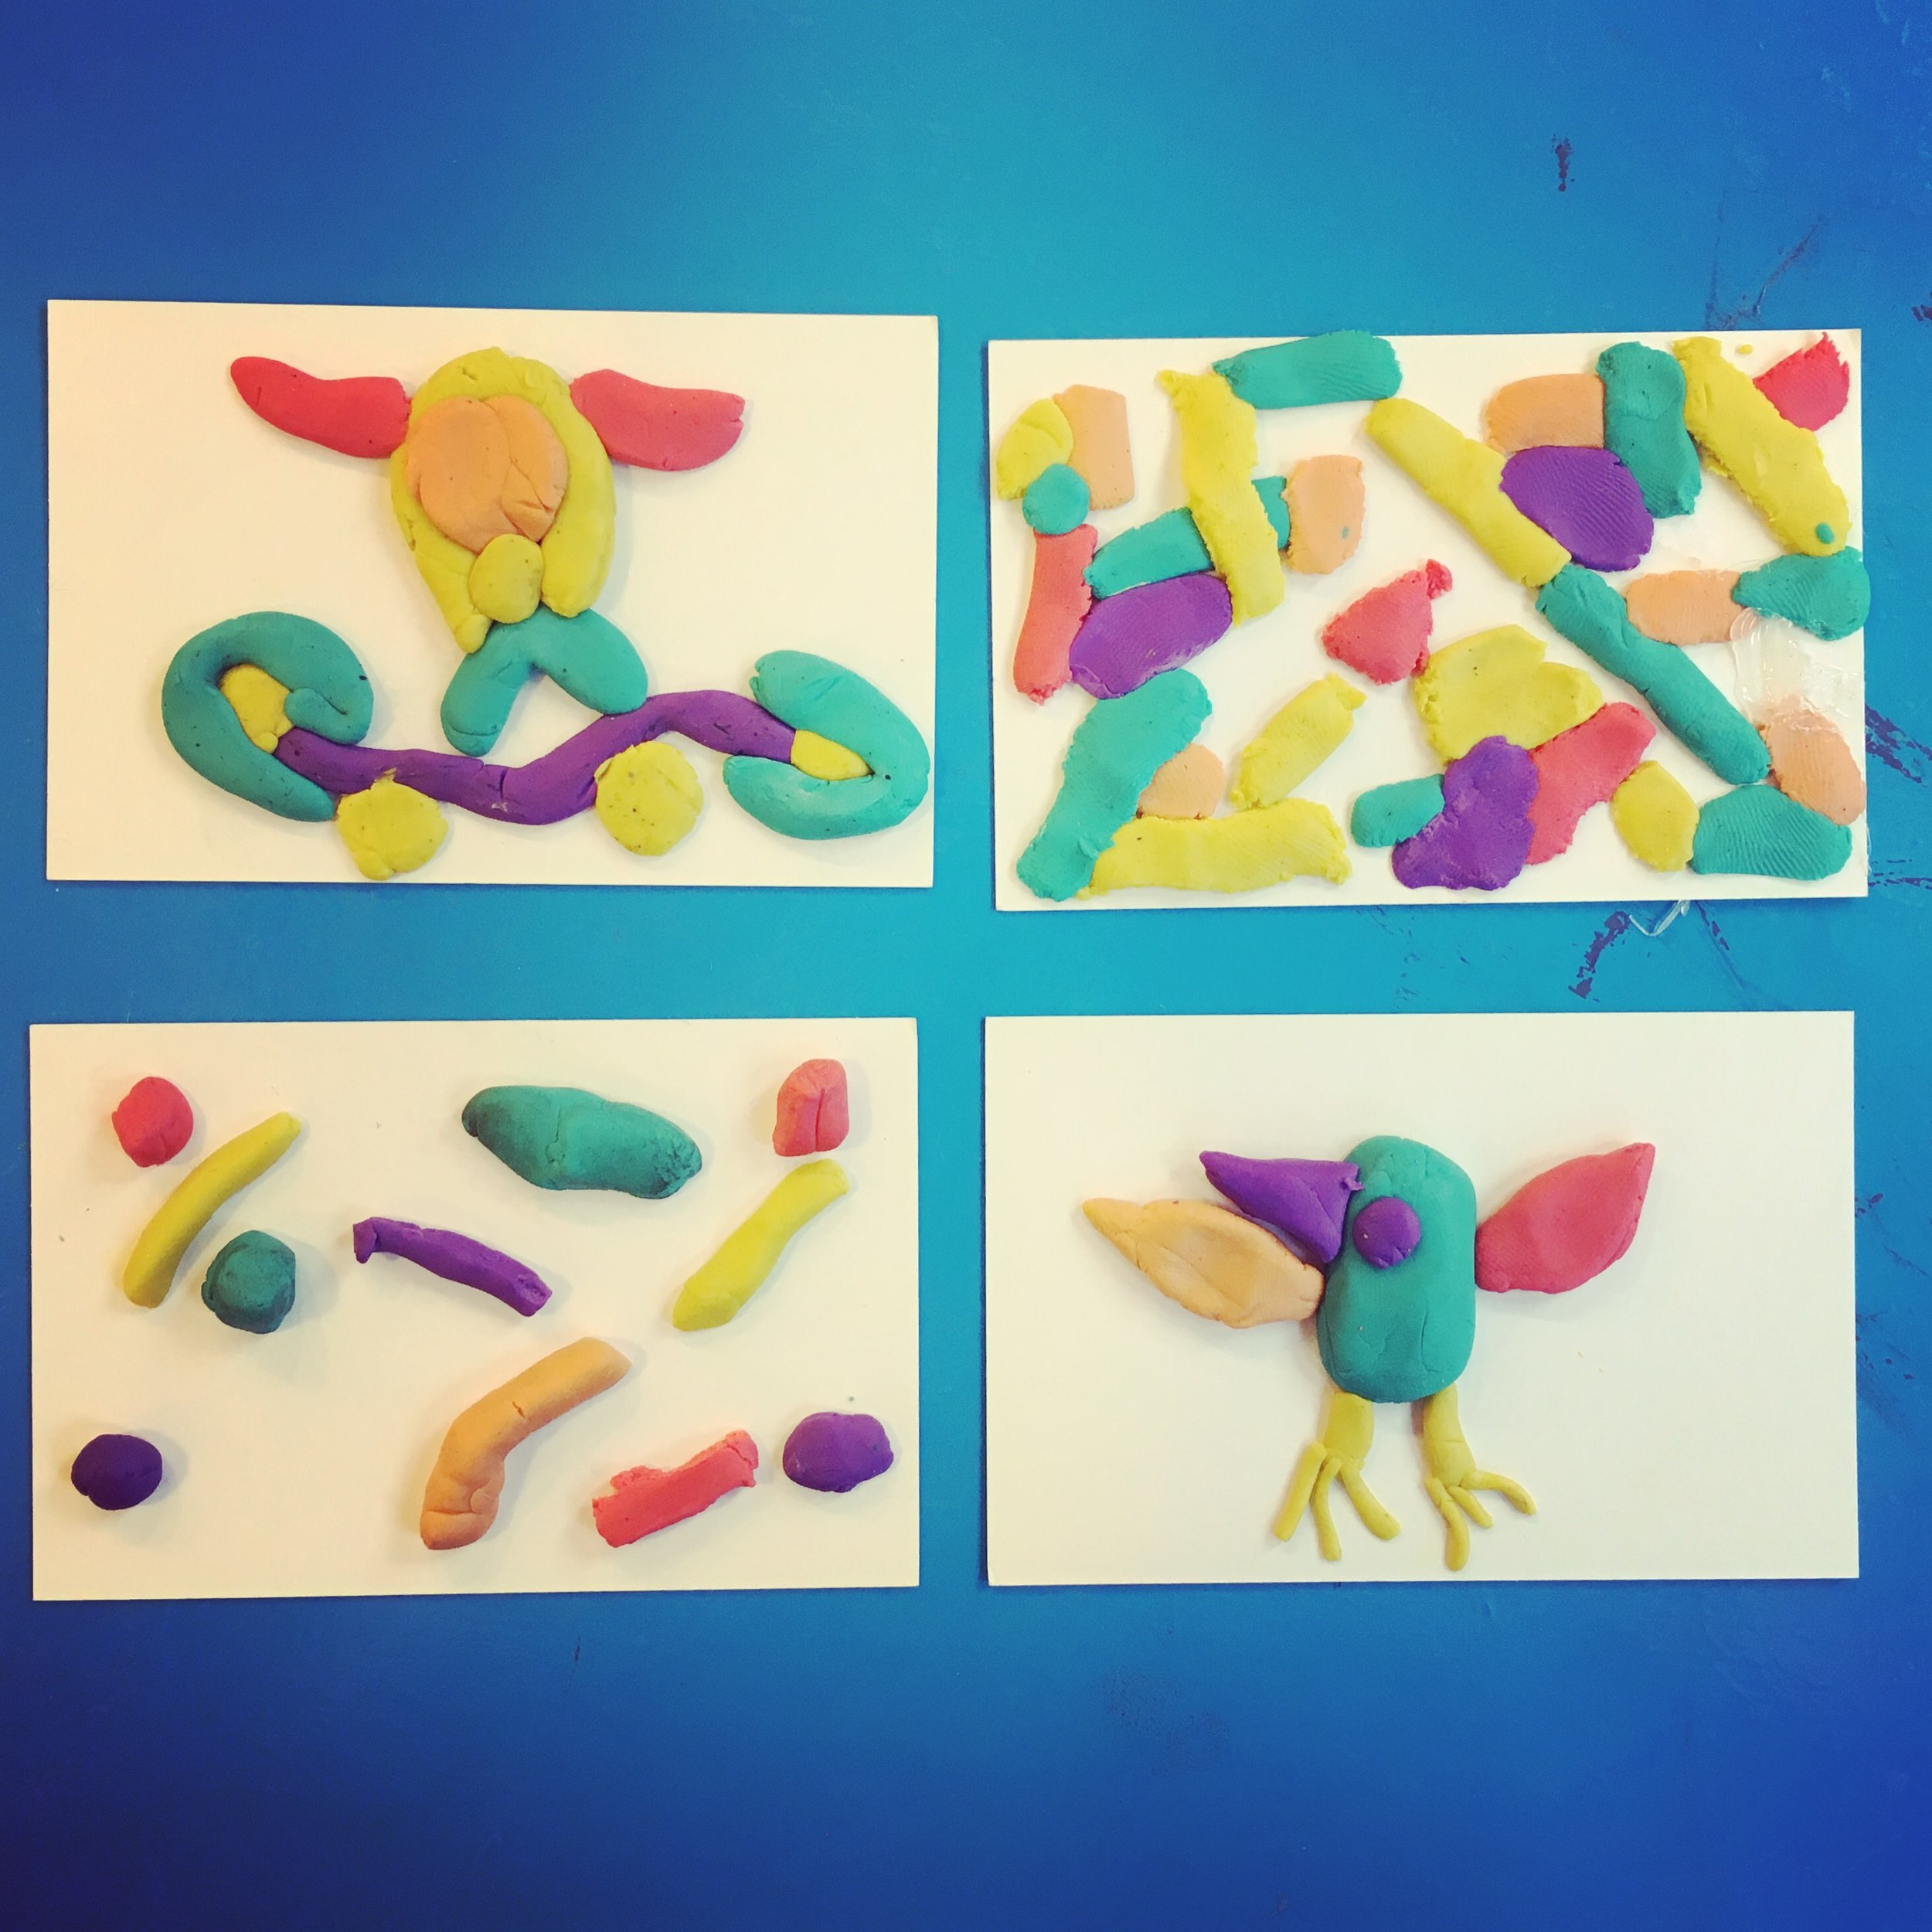 Discover & Create - I usually offer a small ice-breaker at the beginning of classes whilst we wait for everyone to arrive and get settled - these plasticine doodles were too nice not to photograph.